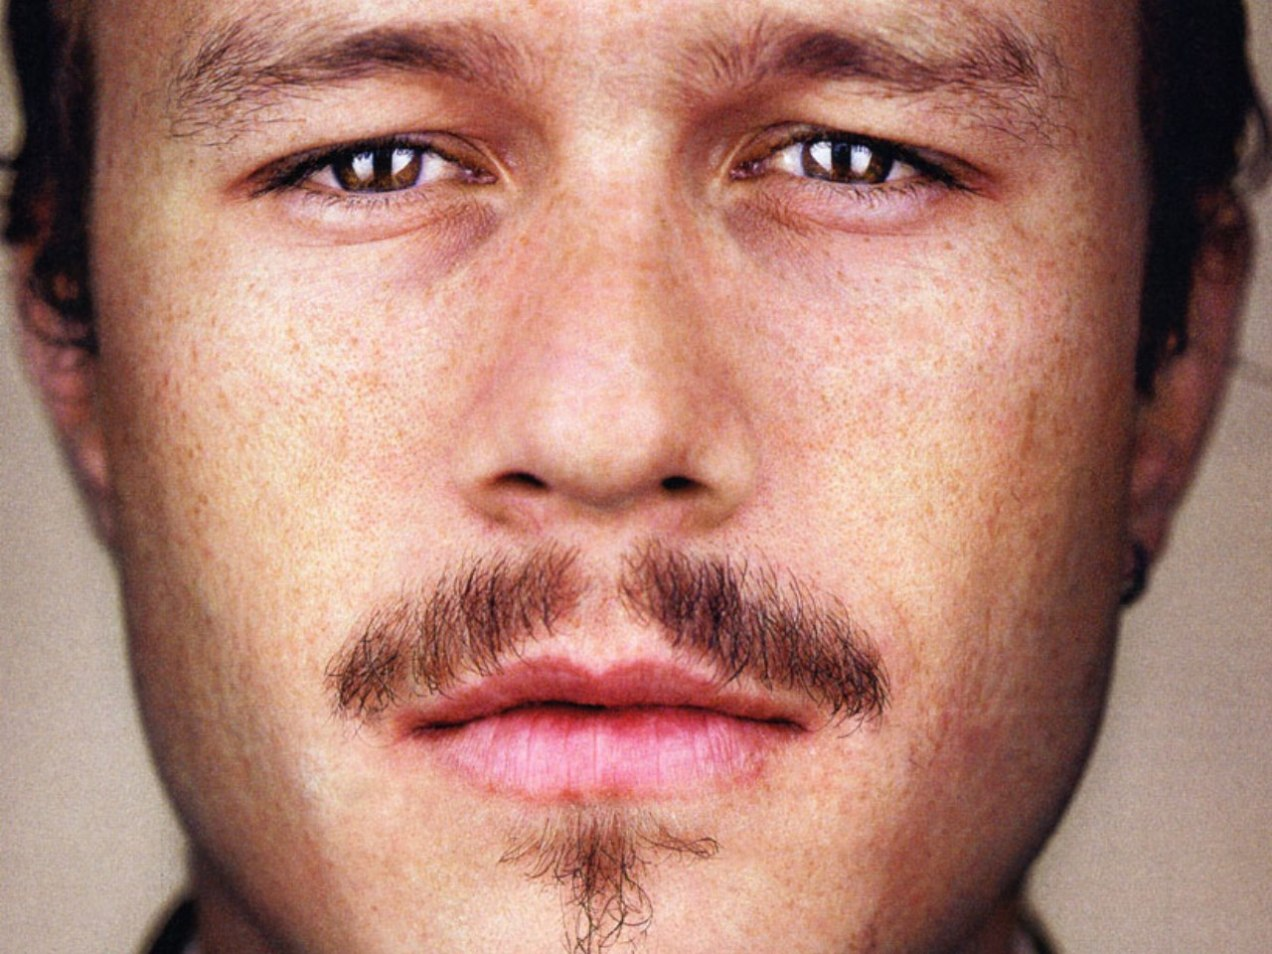 47194_xit-ledzher_or_heath-ledger_1280x960_(www.GdeFon.ru)